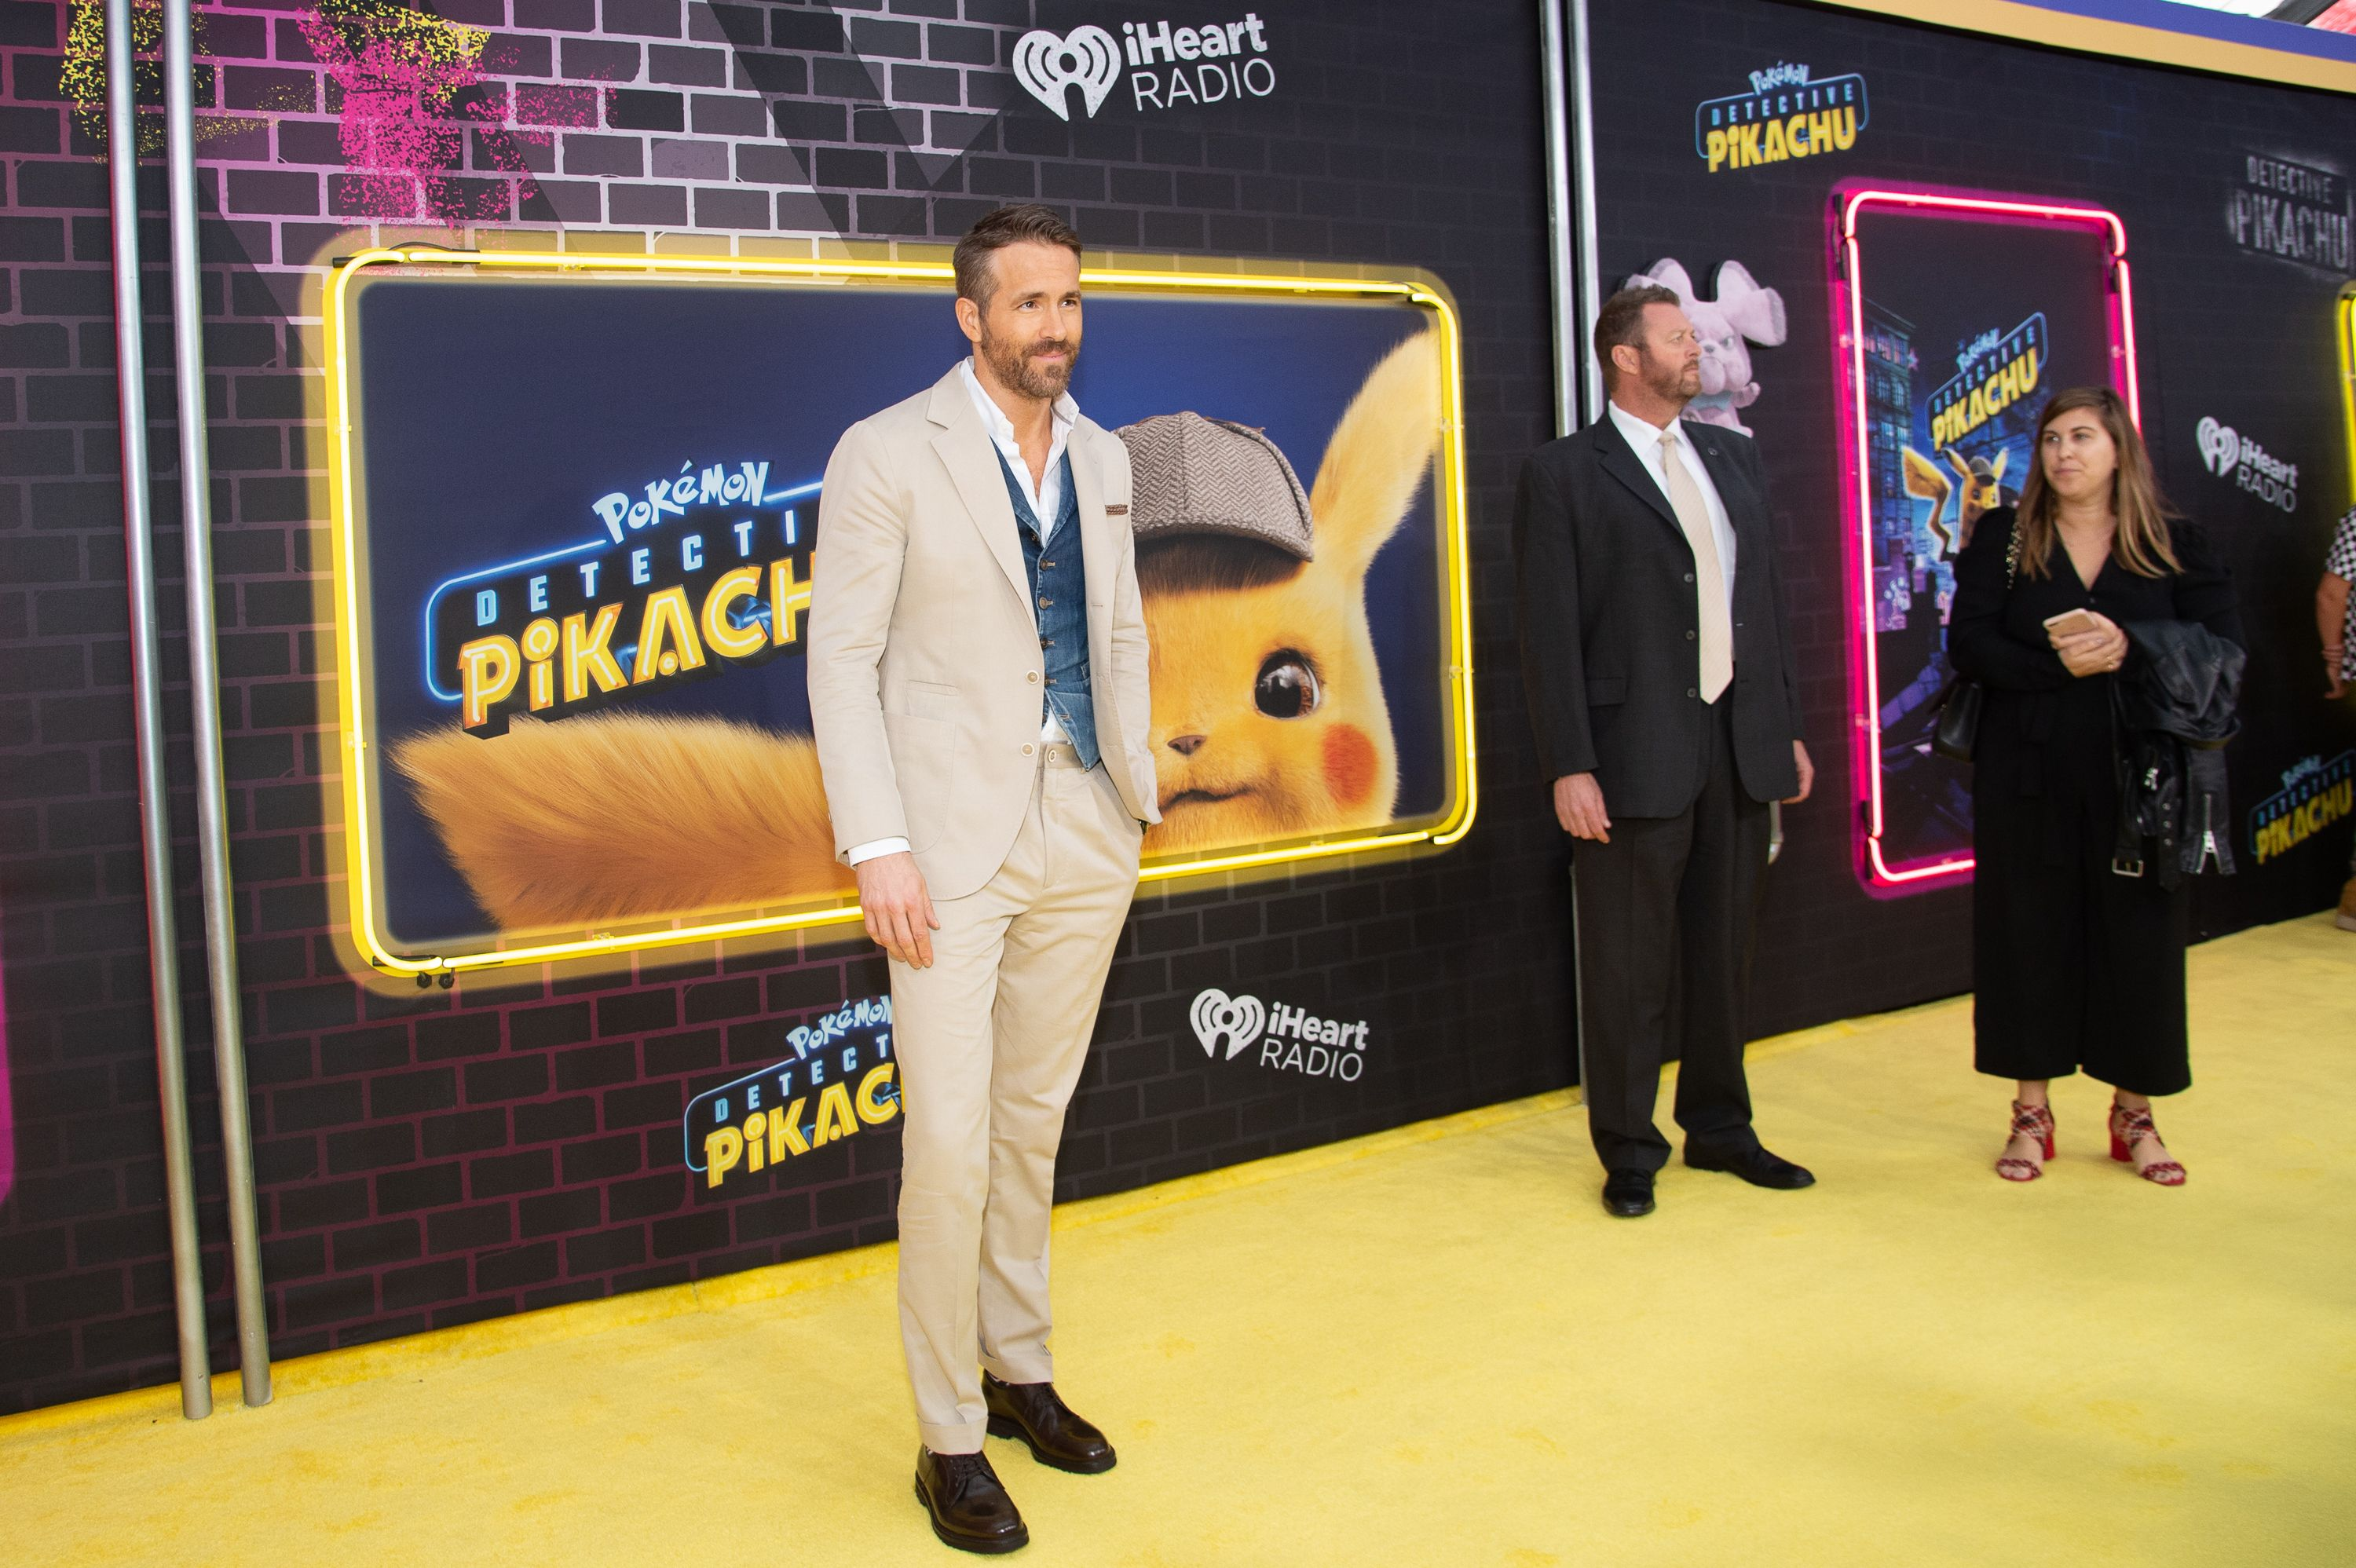 What Is Ryan Reynolds' Net Worth? Here's What We Know About the Detective Pikachu Star's Earnings